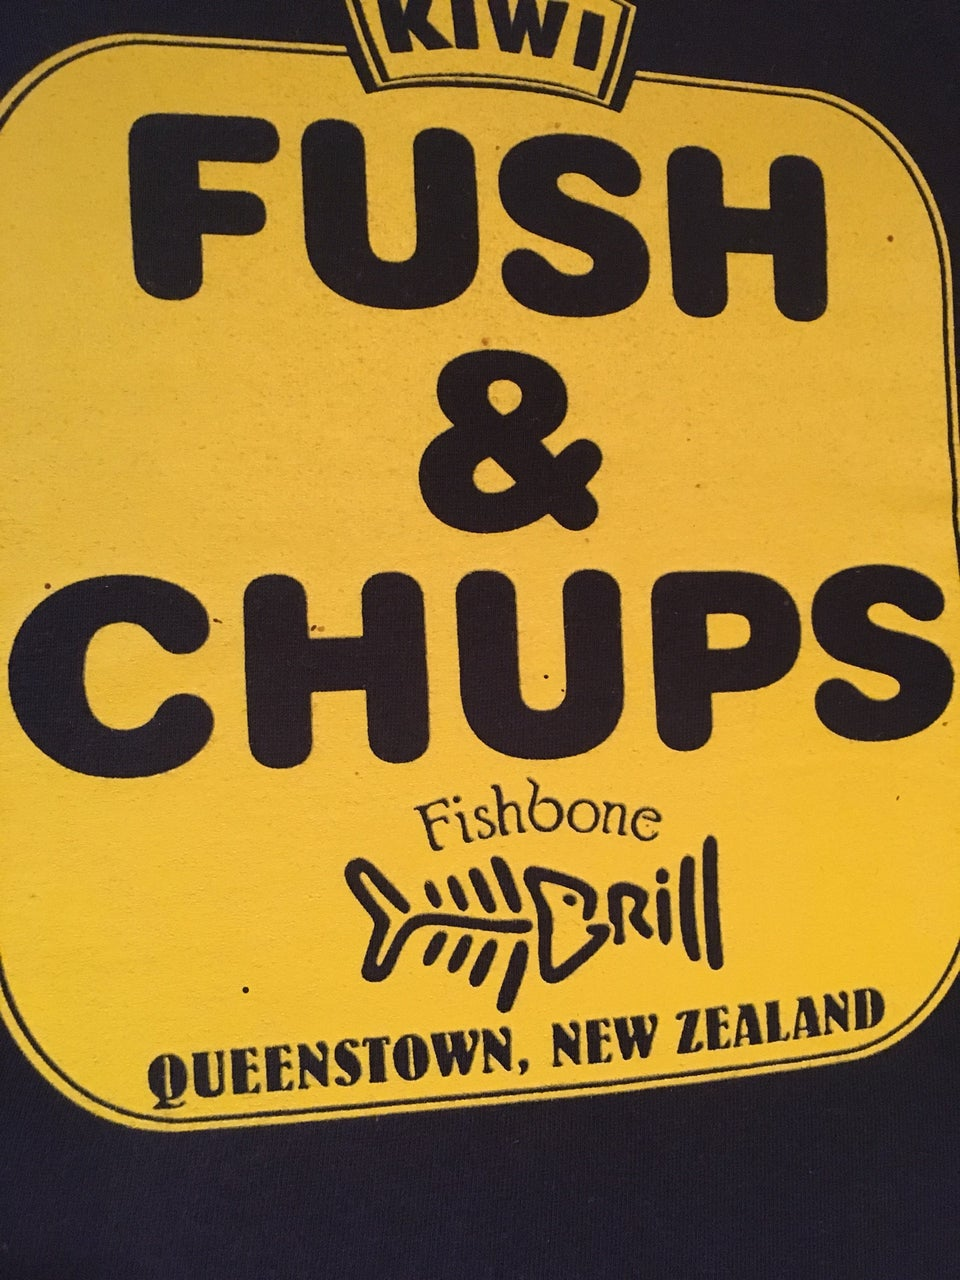 Photo of Fishbone Bar & Grill